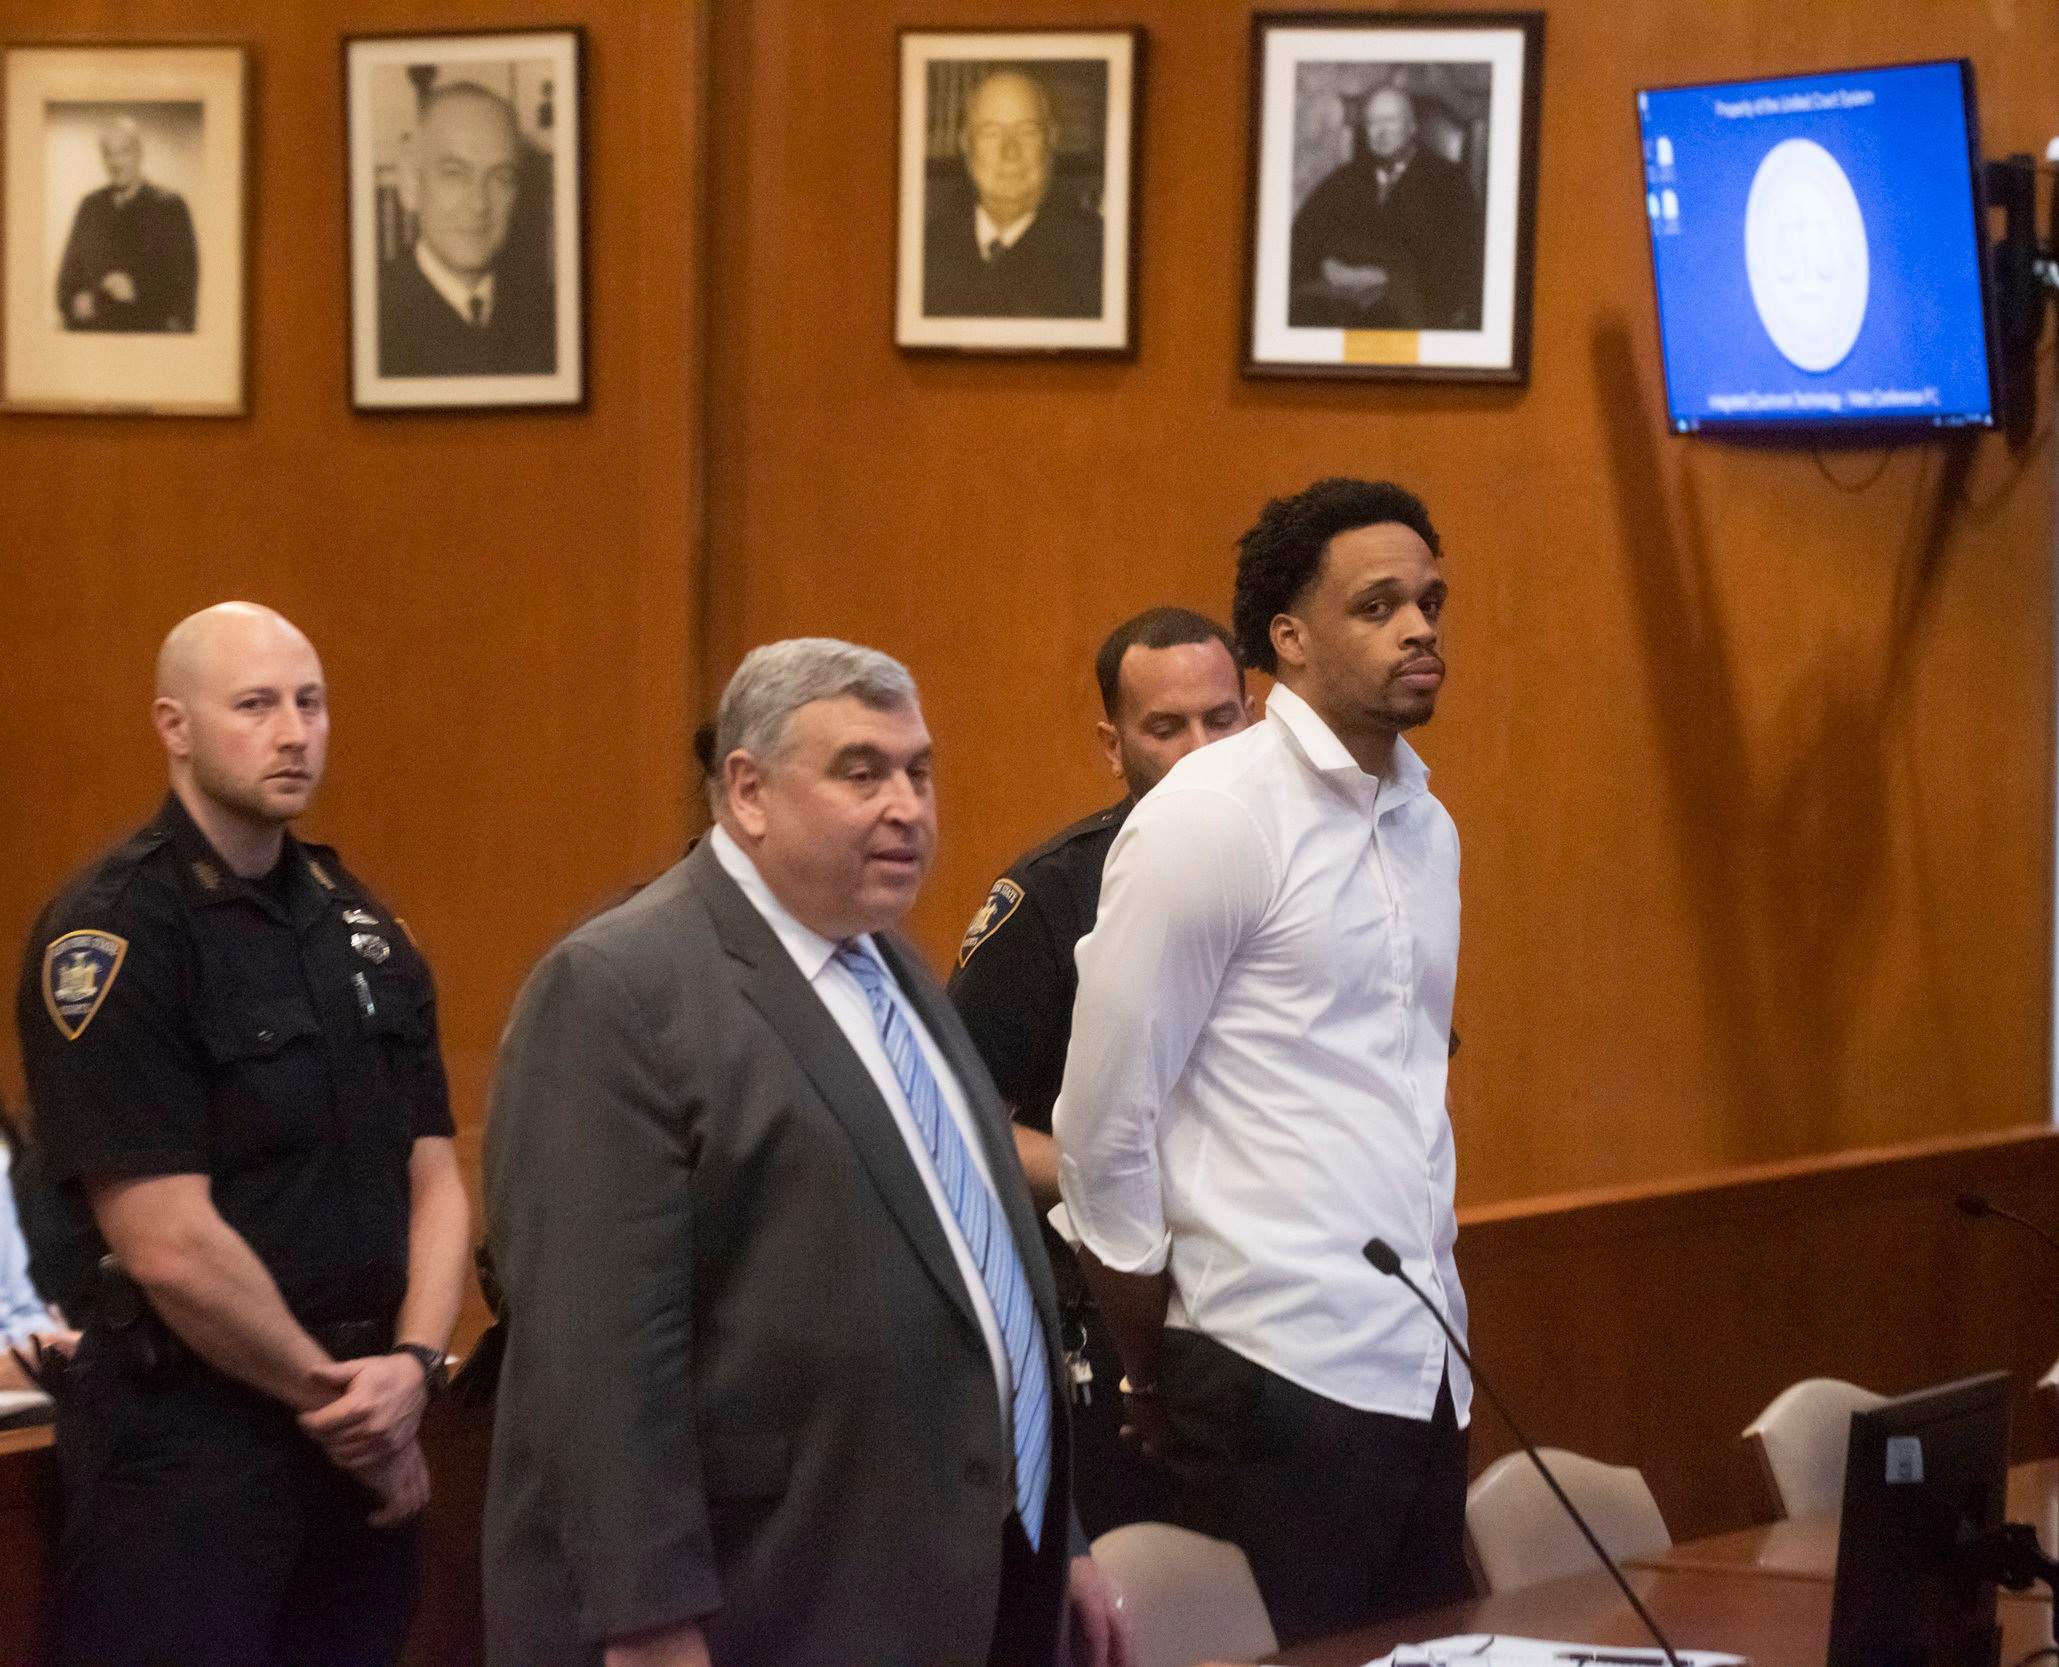 Jamaica resident Jagger Freeman (right) was indicted on a second-degree murder charge for his alleged role in a cellphone store robbery that led to the death of Detective Brian Simonsen last month. Freeman is represented by attorney Ronald Nir (left). Pool photo by Charlie Eckert.